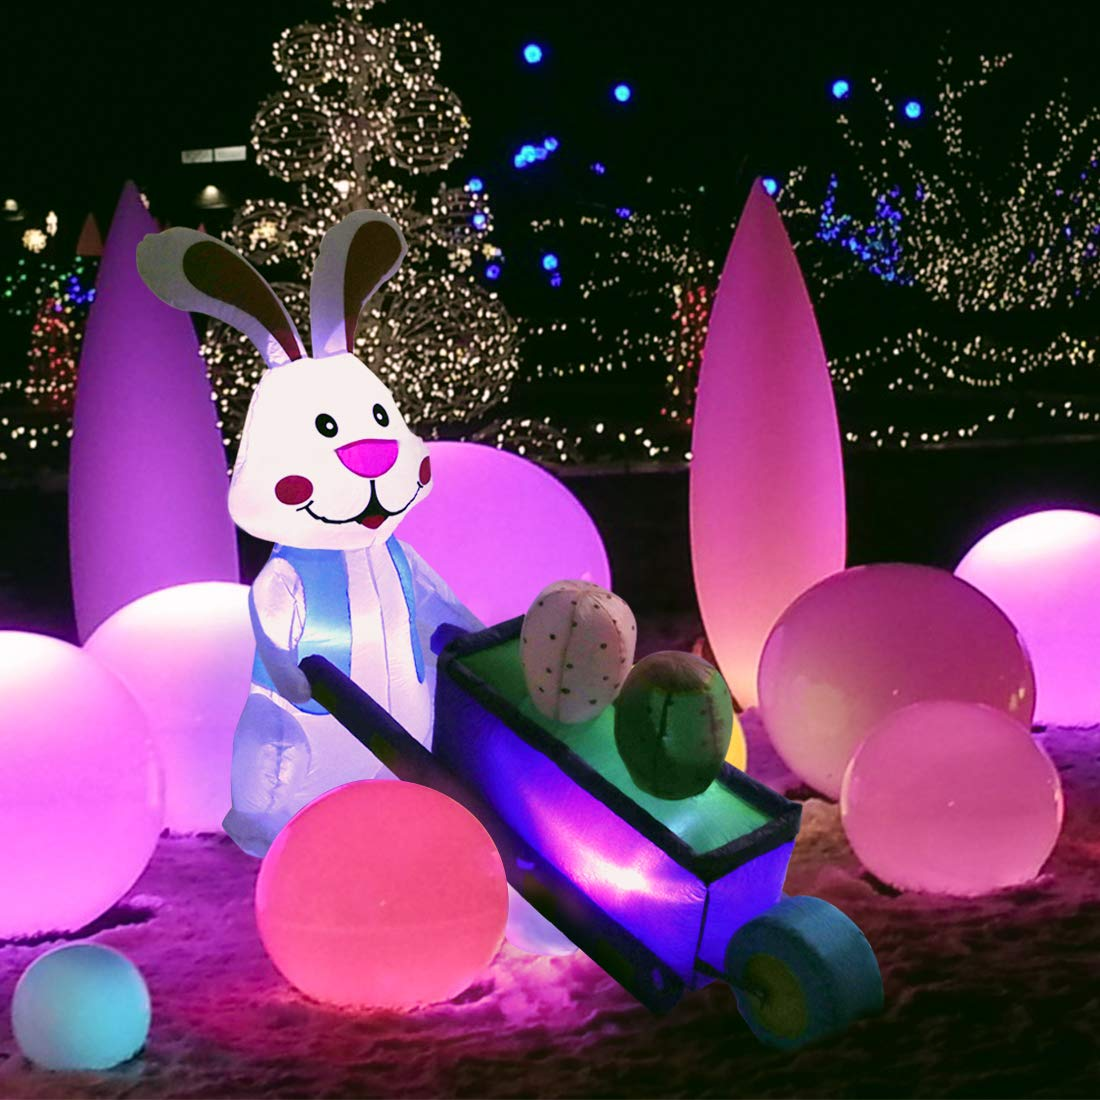 VIVOHOME 5.5ft Long Inflatable LED Lighted Bunny Pushing Wheelbarrow with Eggs Easter Outdoor Yard Decoration